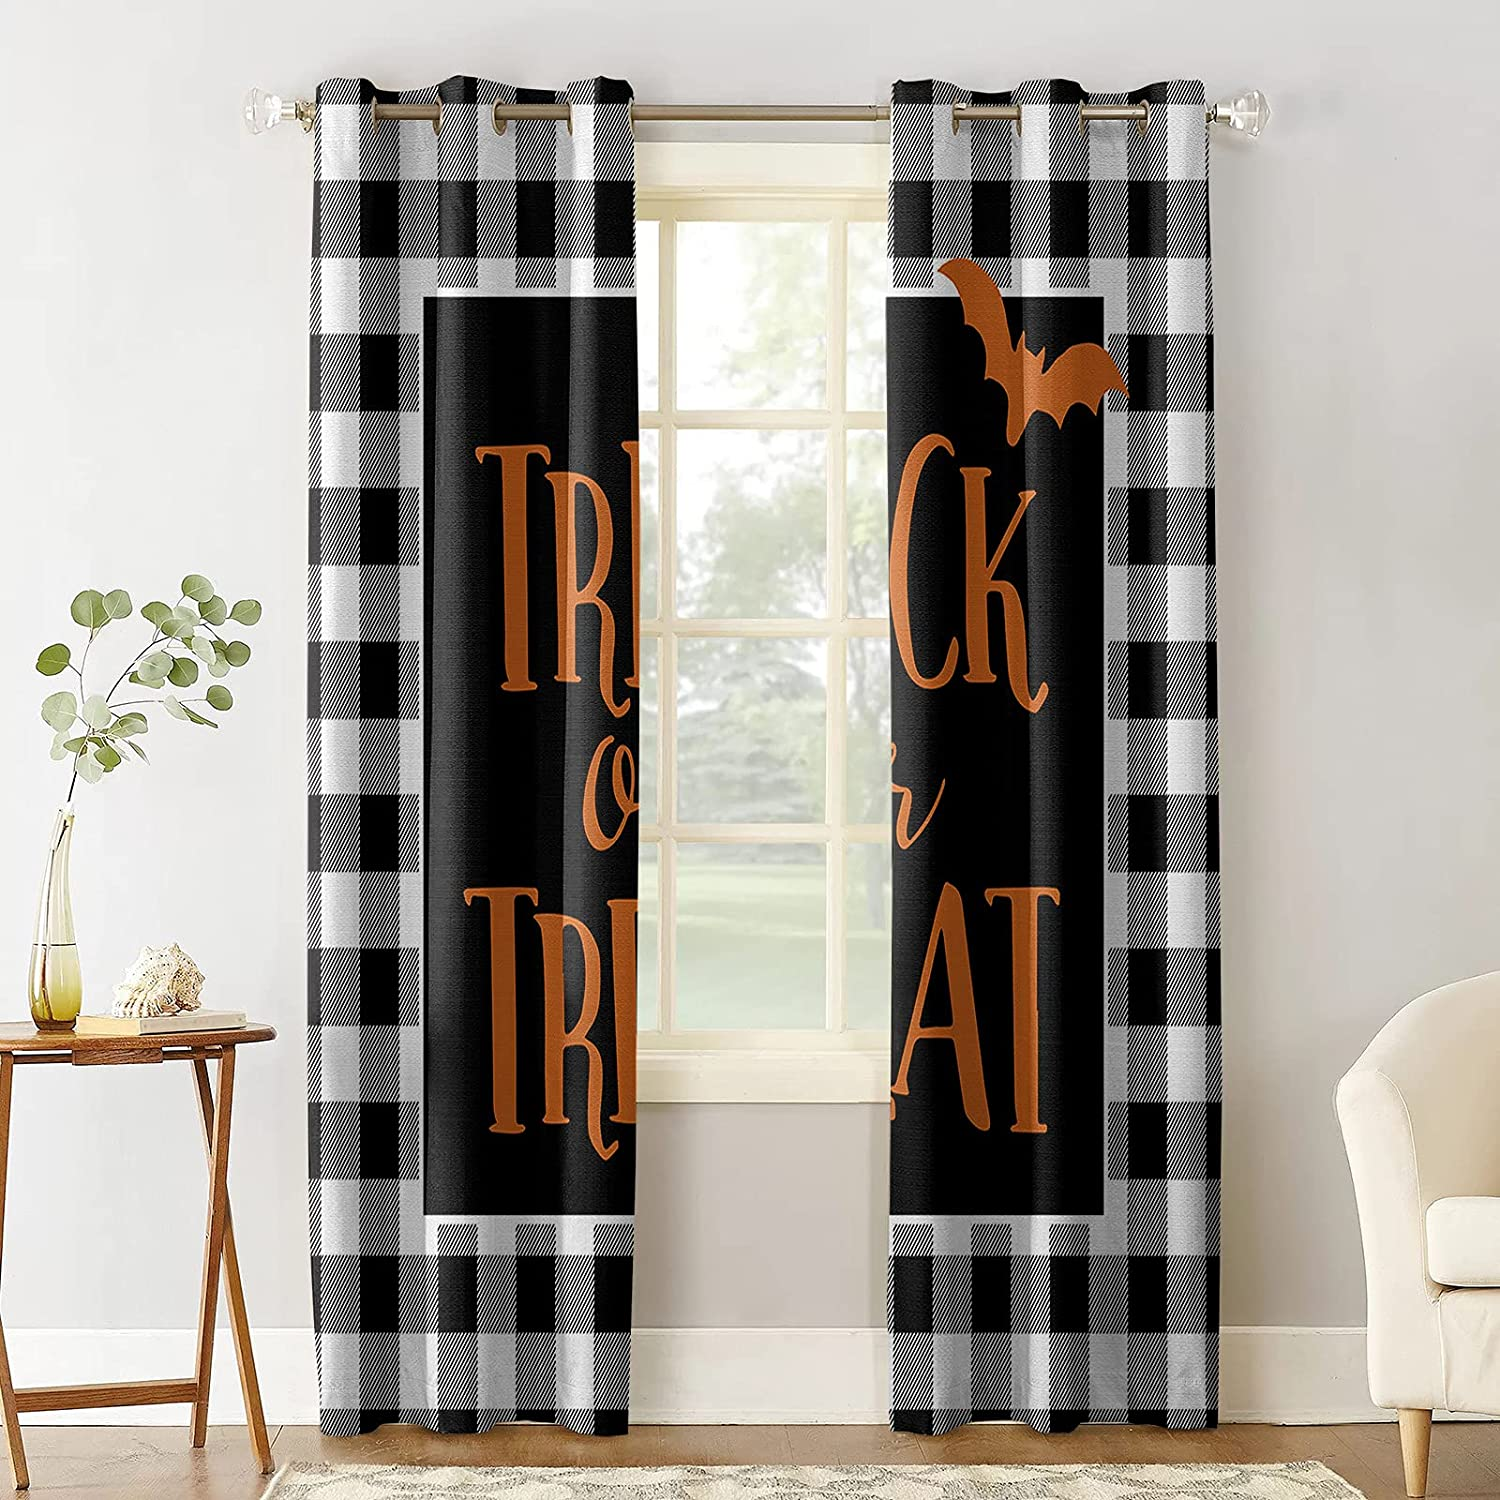 Curtains 42 High quality new x 84 inch Selling and selling for Living Bedroom Room Blackout Dar